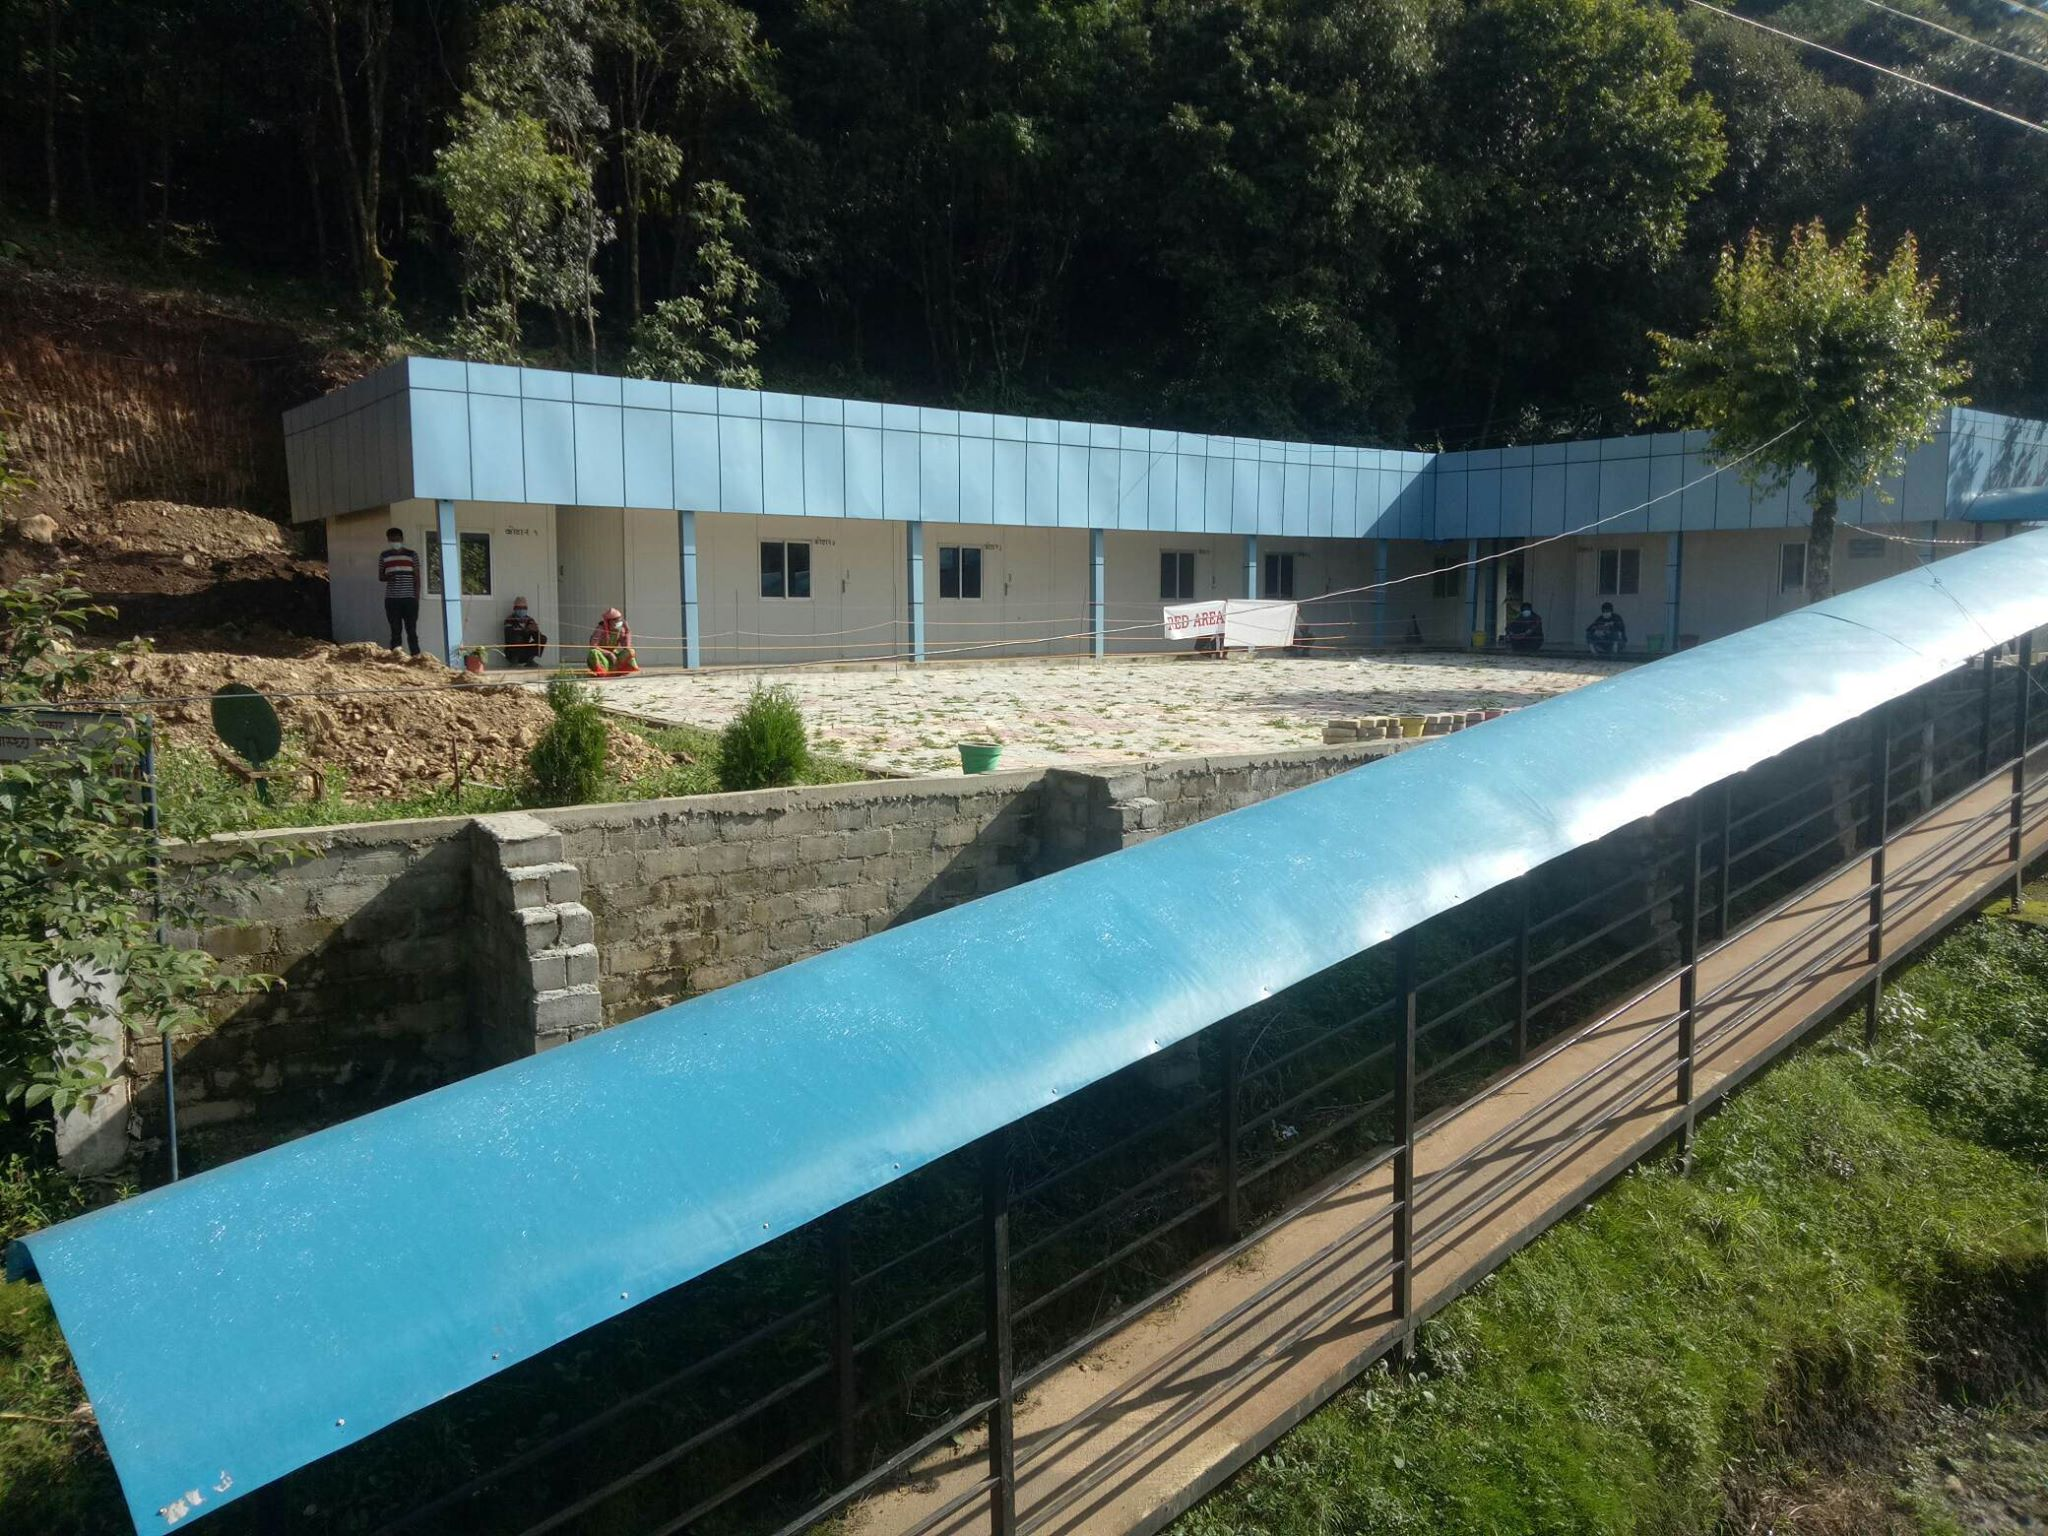 This-block-was-constructed-with-support-of-Damien-Foundation-Nepal-and-is-being-used-as-COVID-Isolation-ward-in-Dadeldhura-Hospital